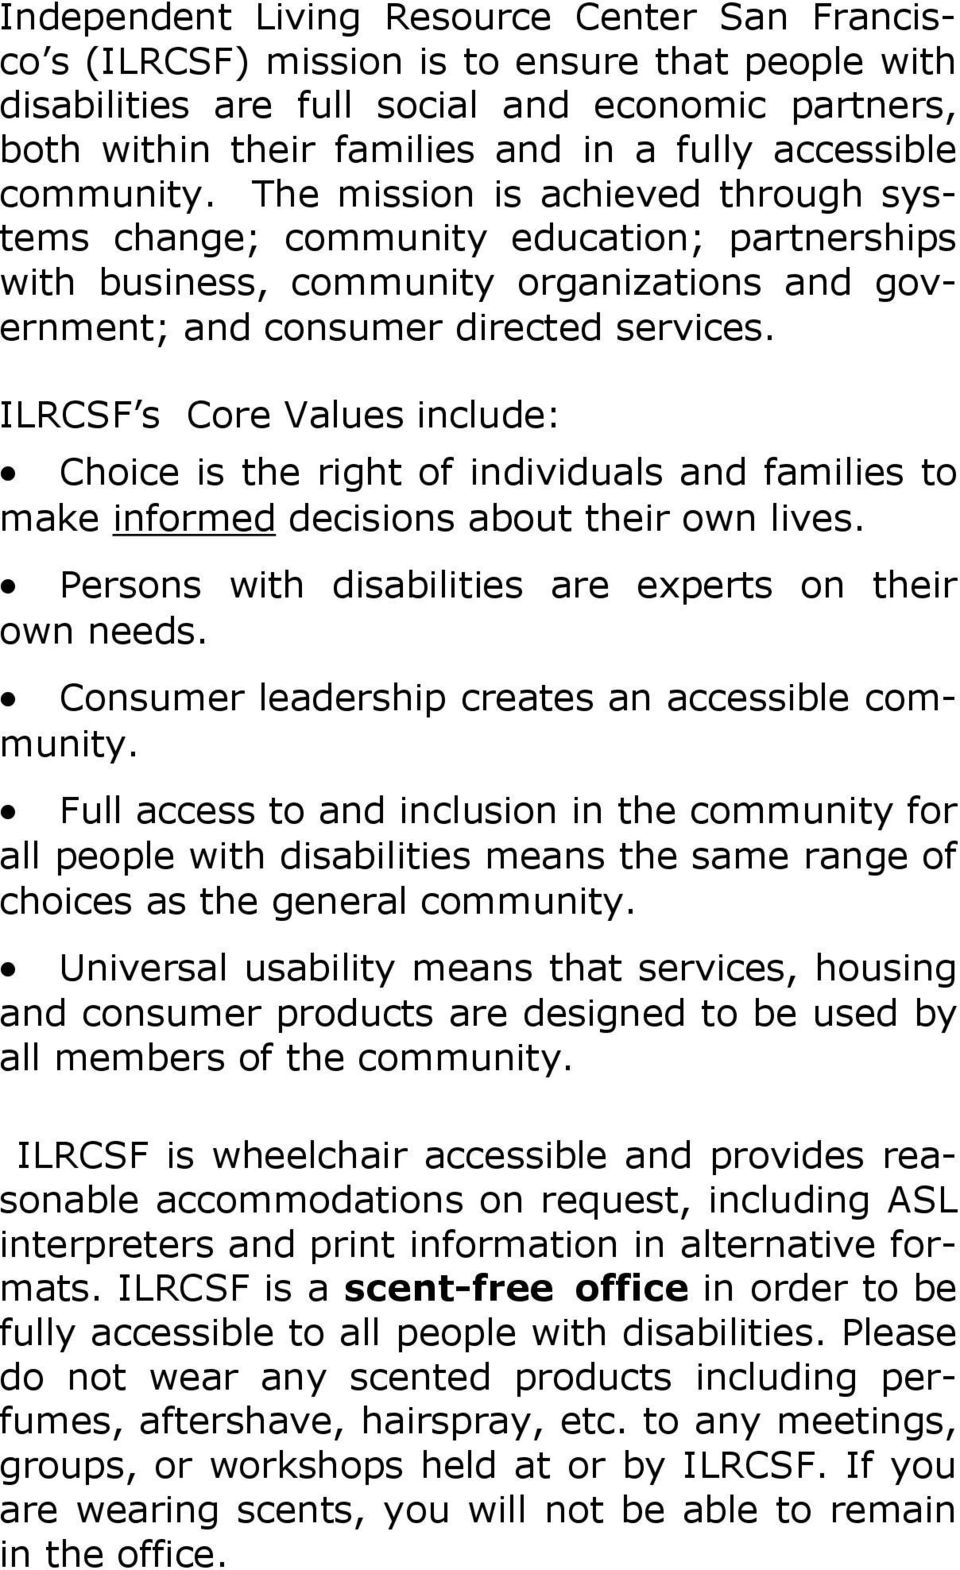 ILRCSF s Core Values include: Choice is the right of individuals and families to make informed decisions about their own lives. Persons with disabilities are experts on their own needs.